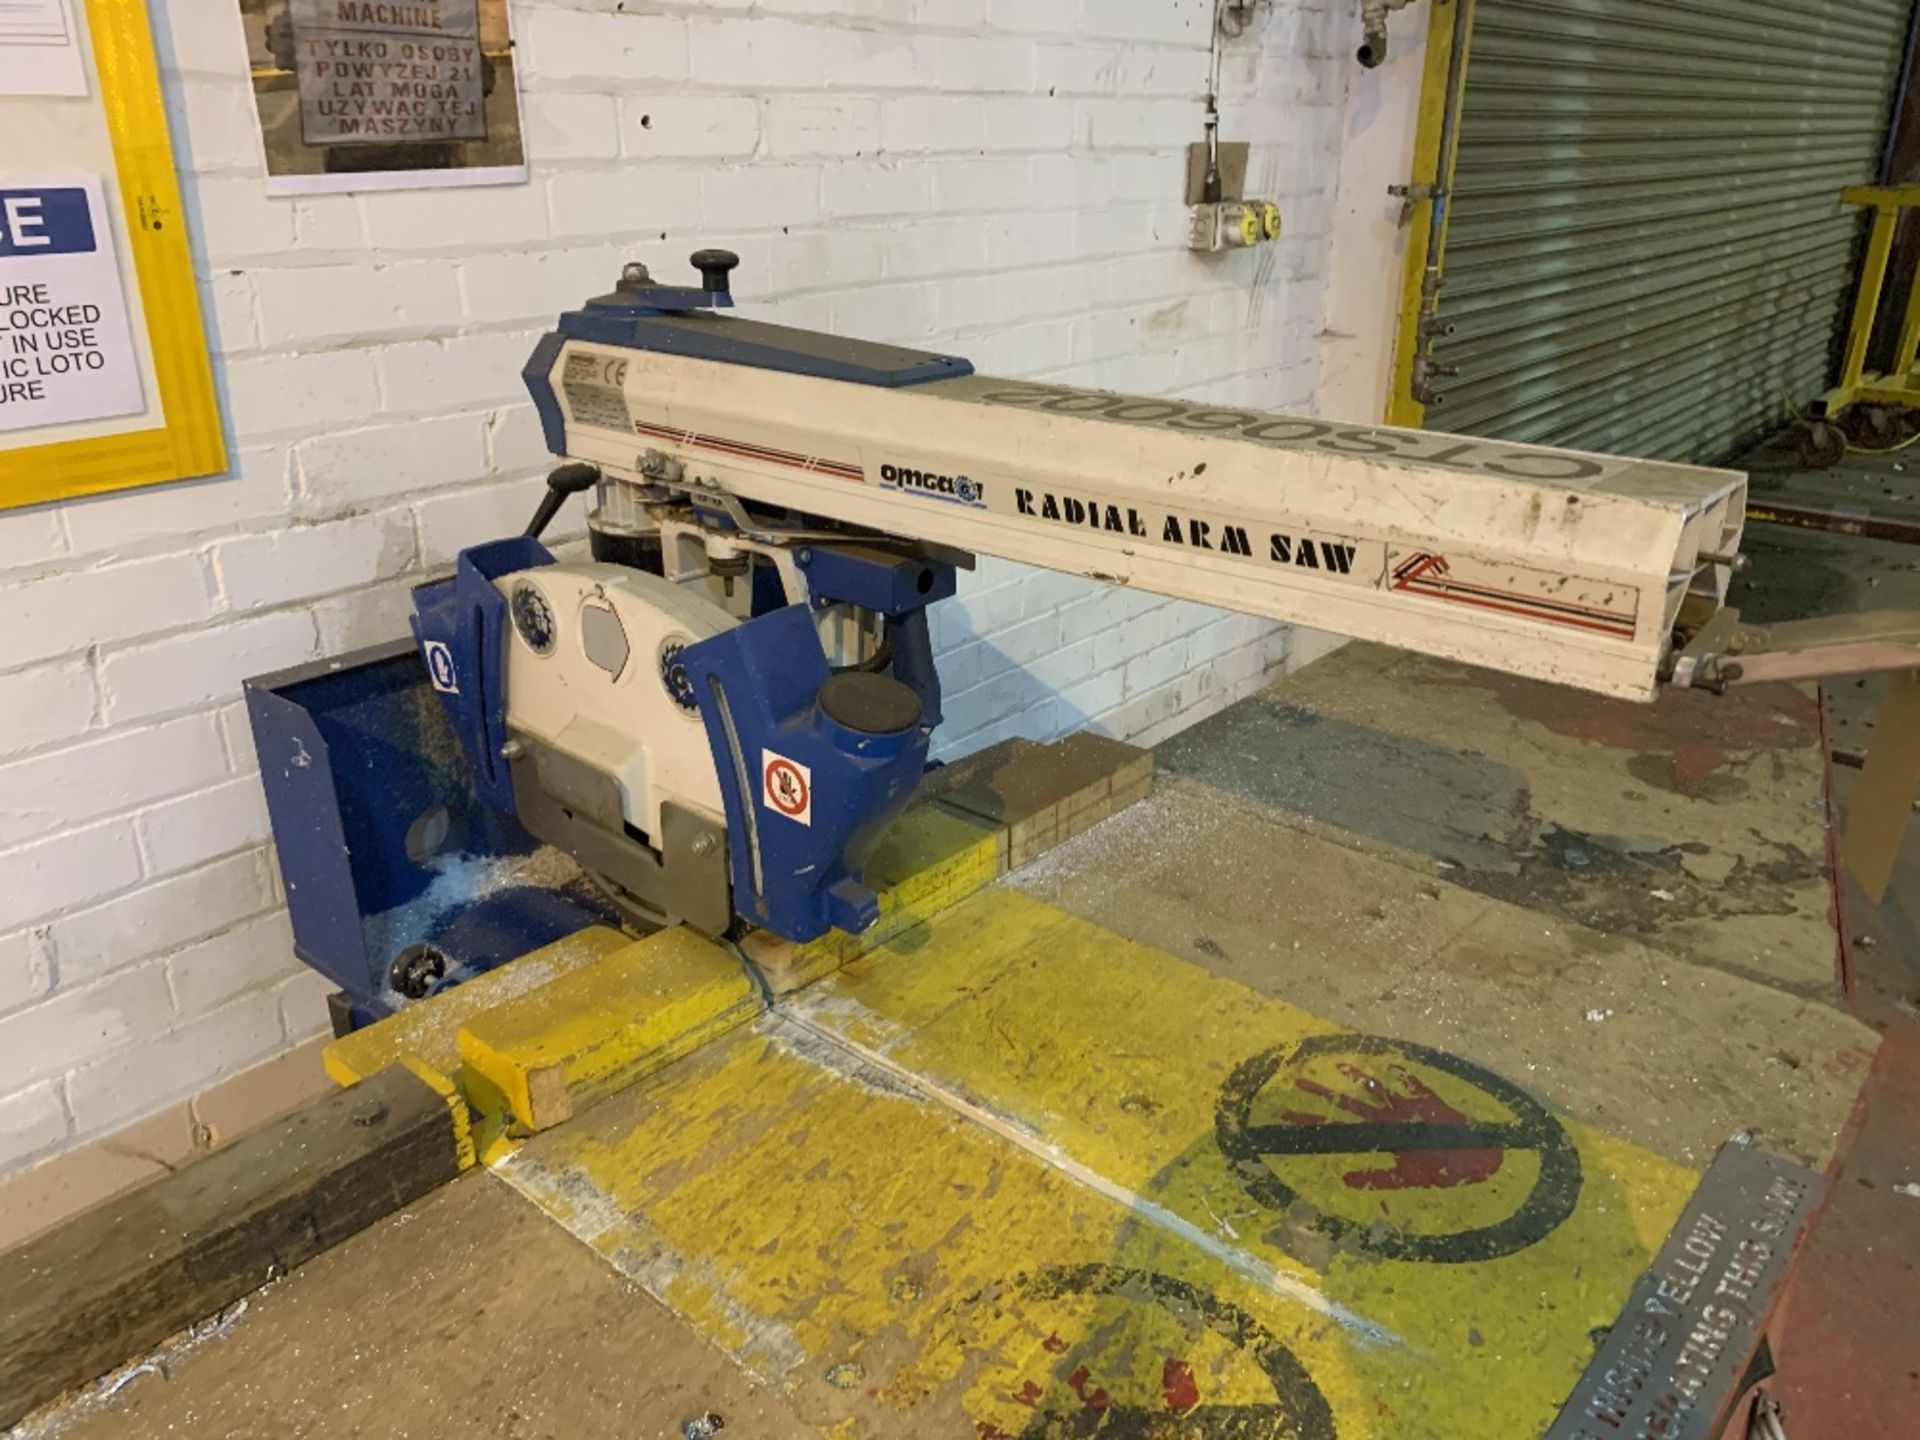 Omgear RN600 Vertical Radial Arm Saw - Image 2 of 4